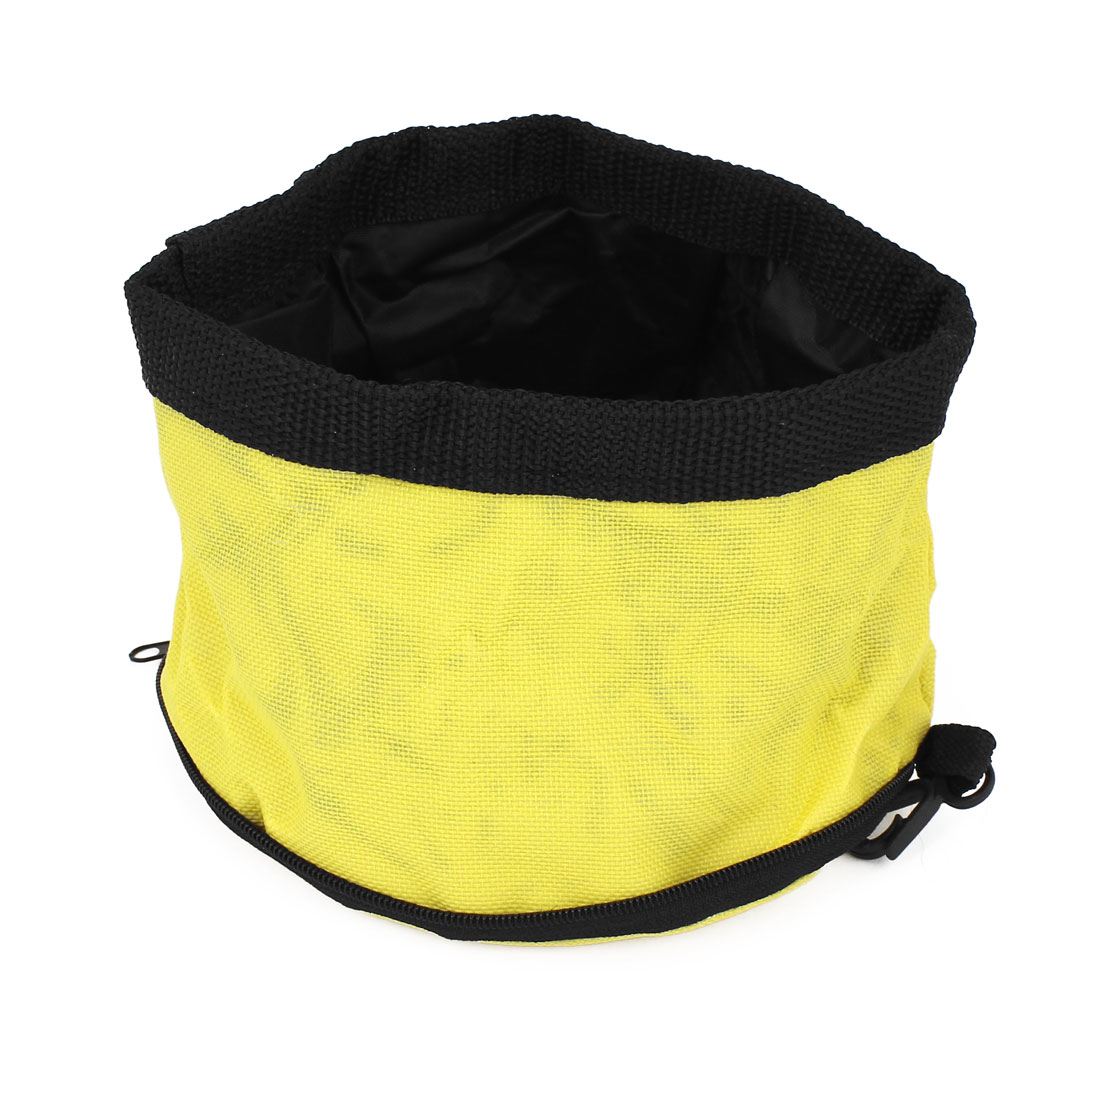 Camping Travel Pet Dog Puppy Folded Zip Up Food Dish Bowl Yellow 15cm Dia